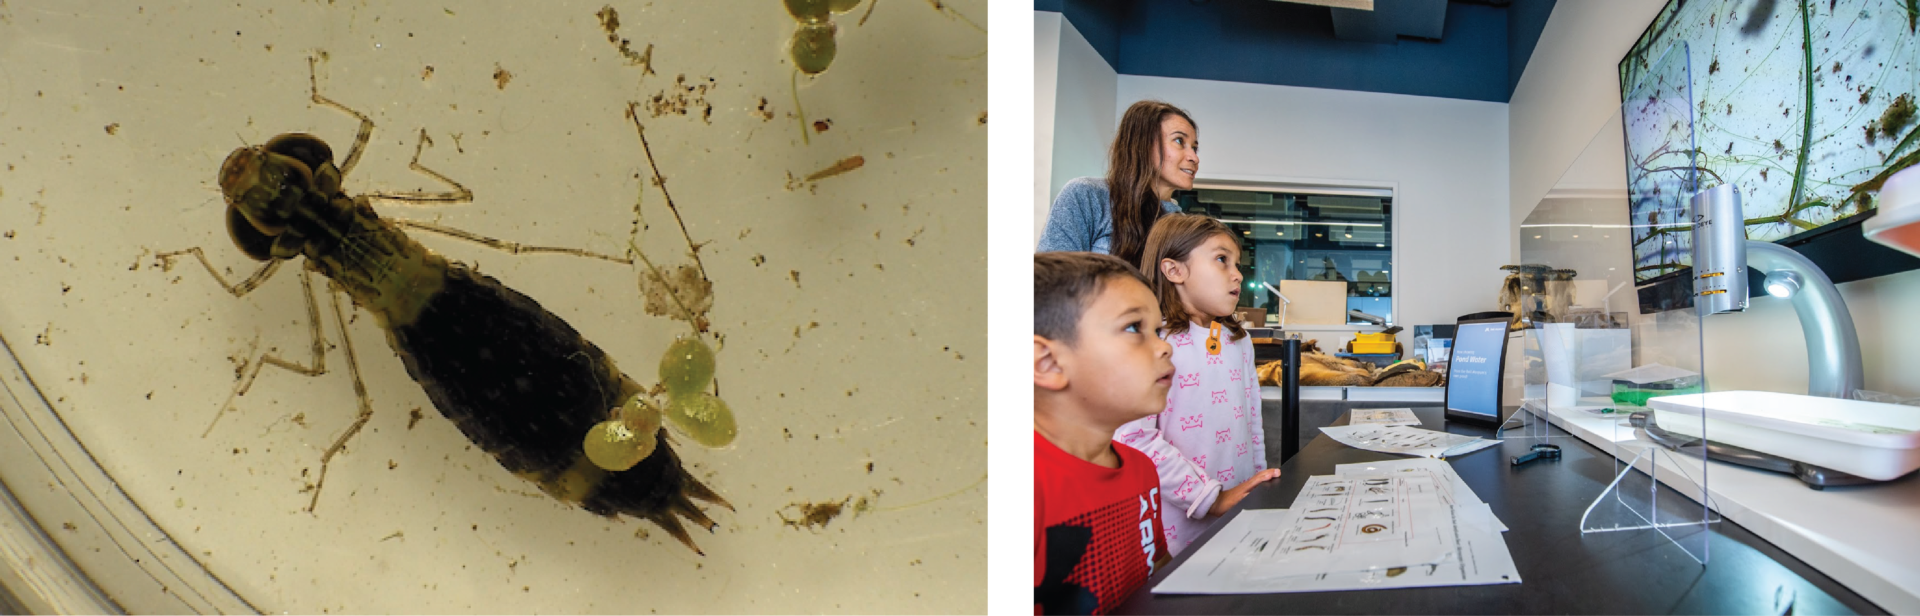 Two images side by side. One is a bug under a microscope and the other is a group of people looking at a microscope